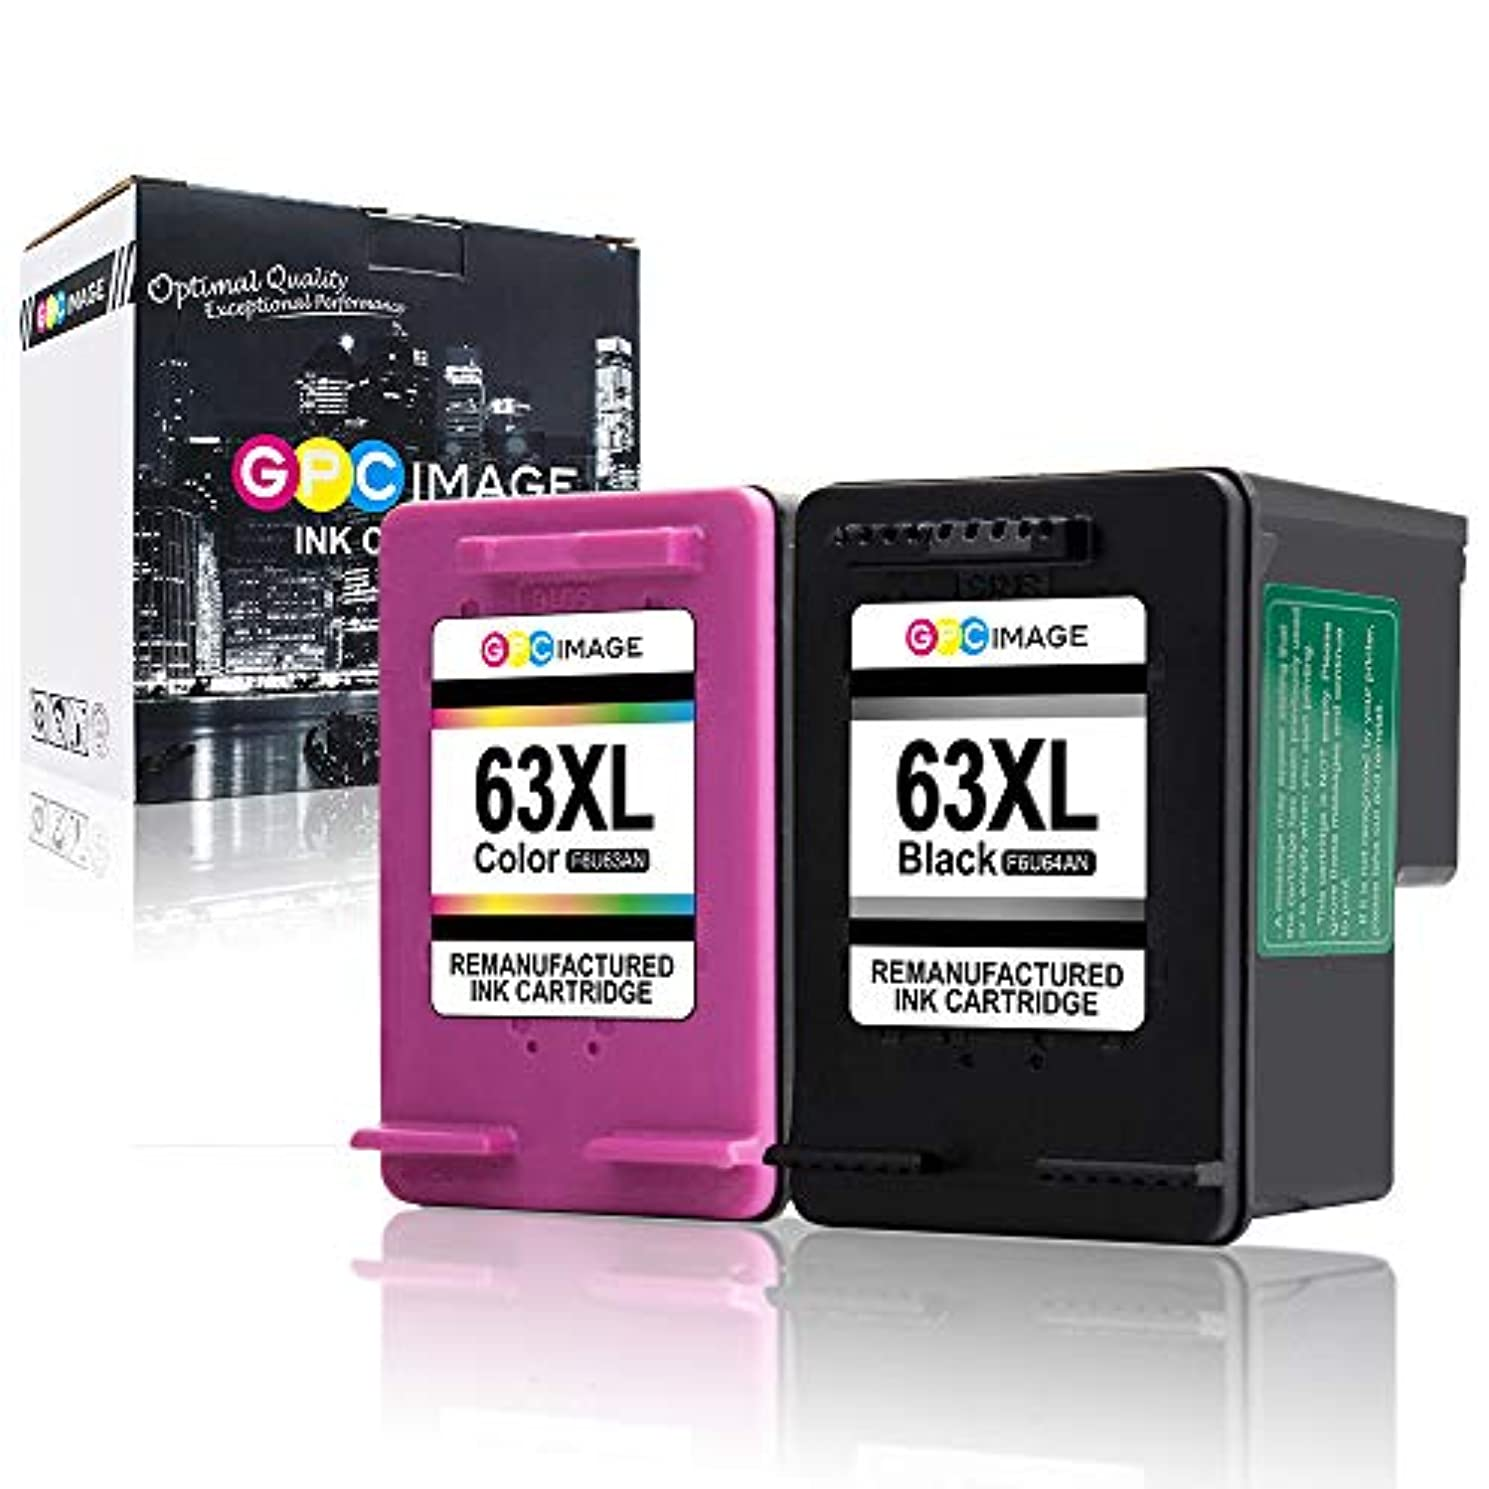 GPC Image Remanufactured Ink Cartridge Replacement for HP 63XL 63 XL to use with Officejet 5252 5255 5258 4650 4655 3830 Envy 4520 4516 Deskjet 1112 2130 3634 3632 2132 (1 Black 1 Tri-Color 2-Pack)